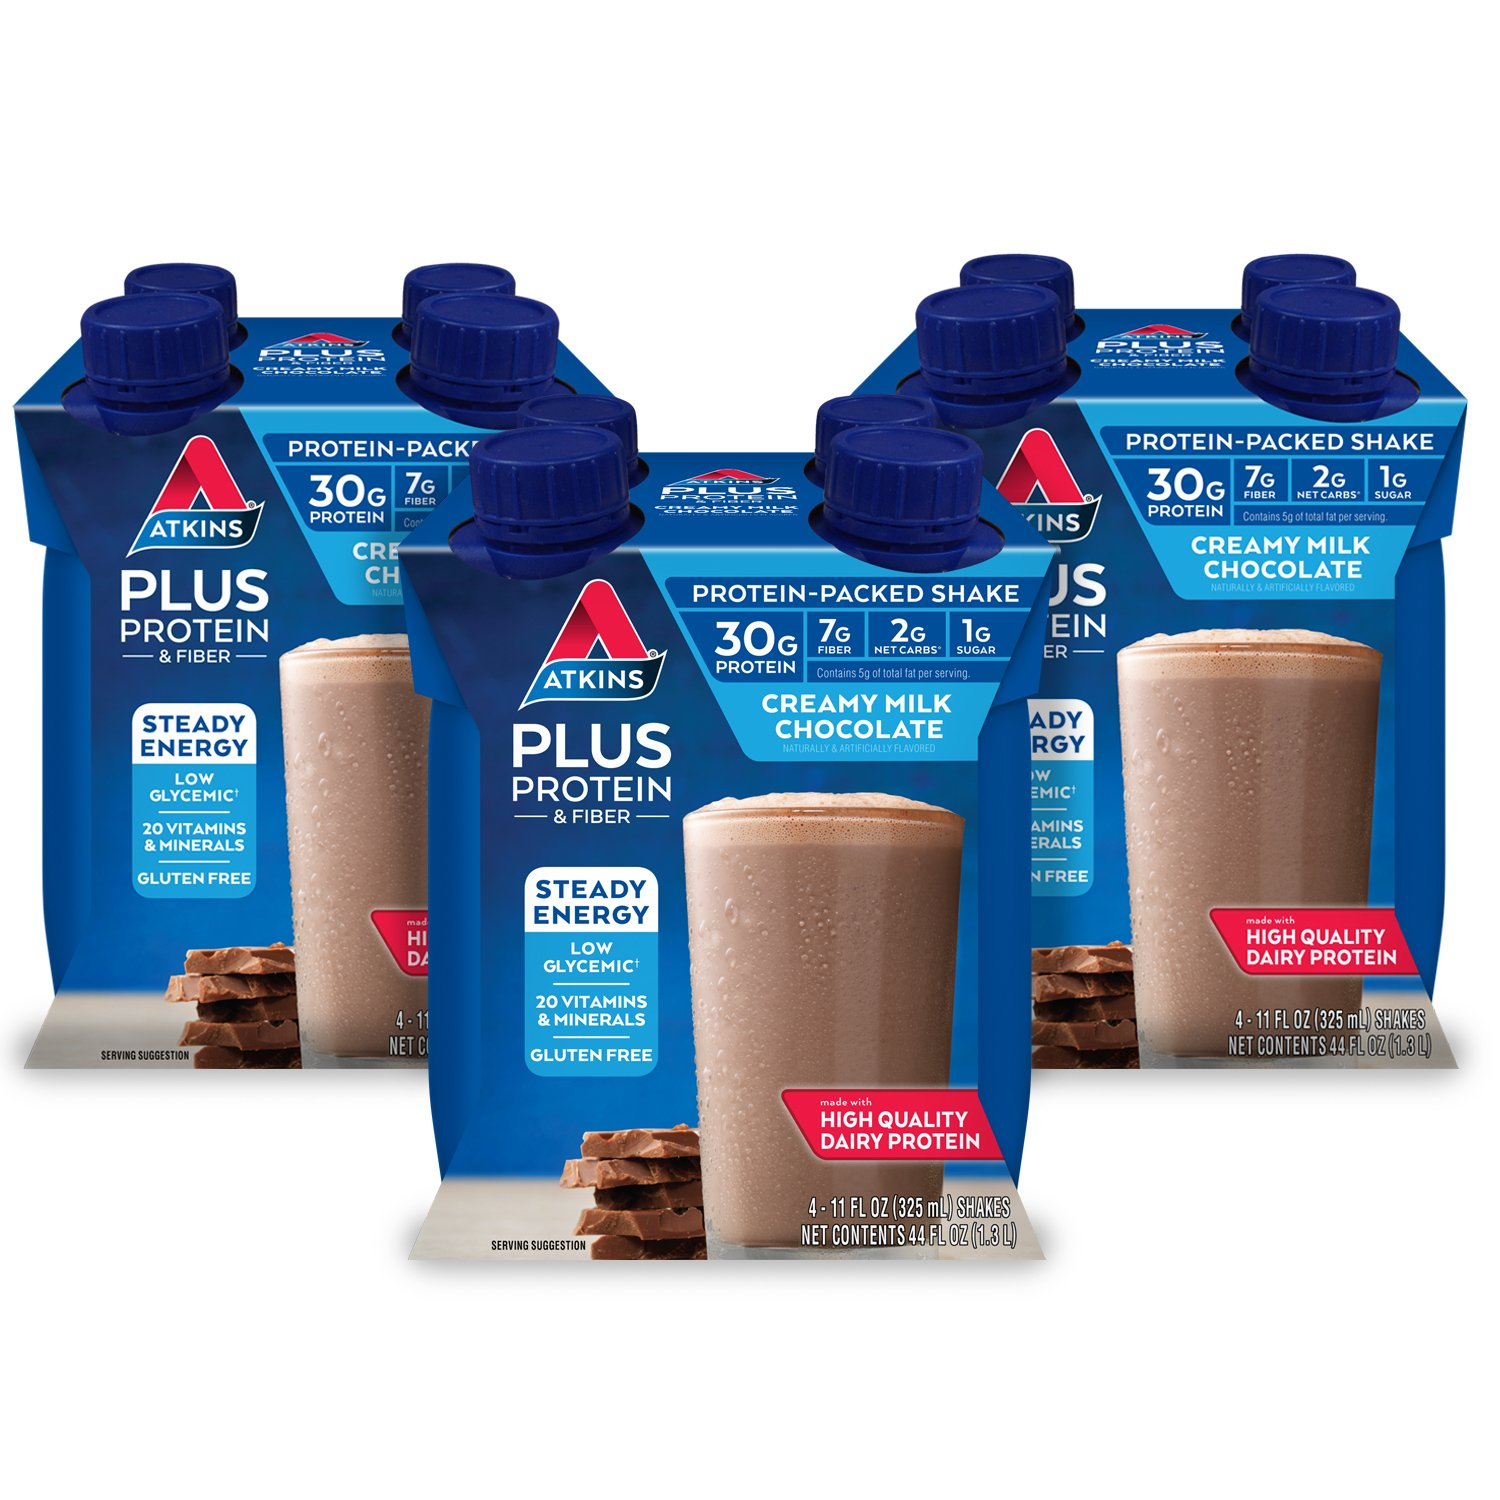 Atkins PLUS Protein & Fiber Shake, Chocolate, 11 Fl Oz, 4 Count (Pack of 3)